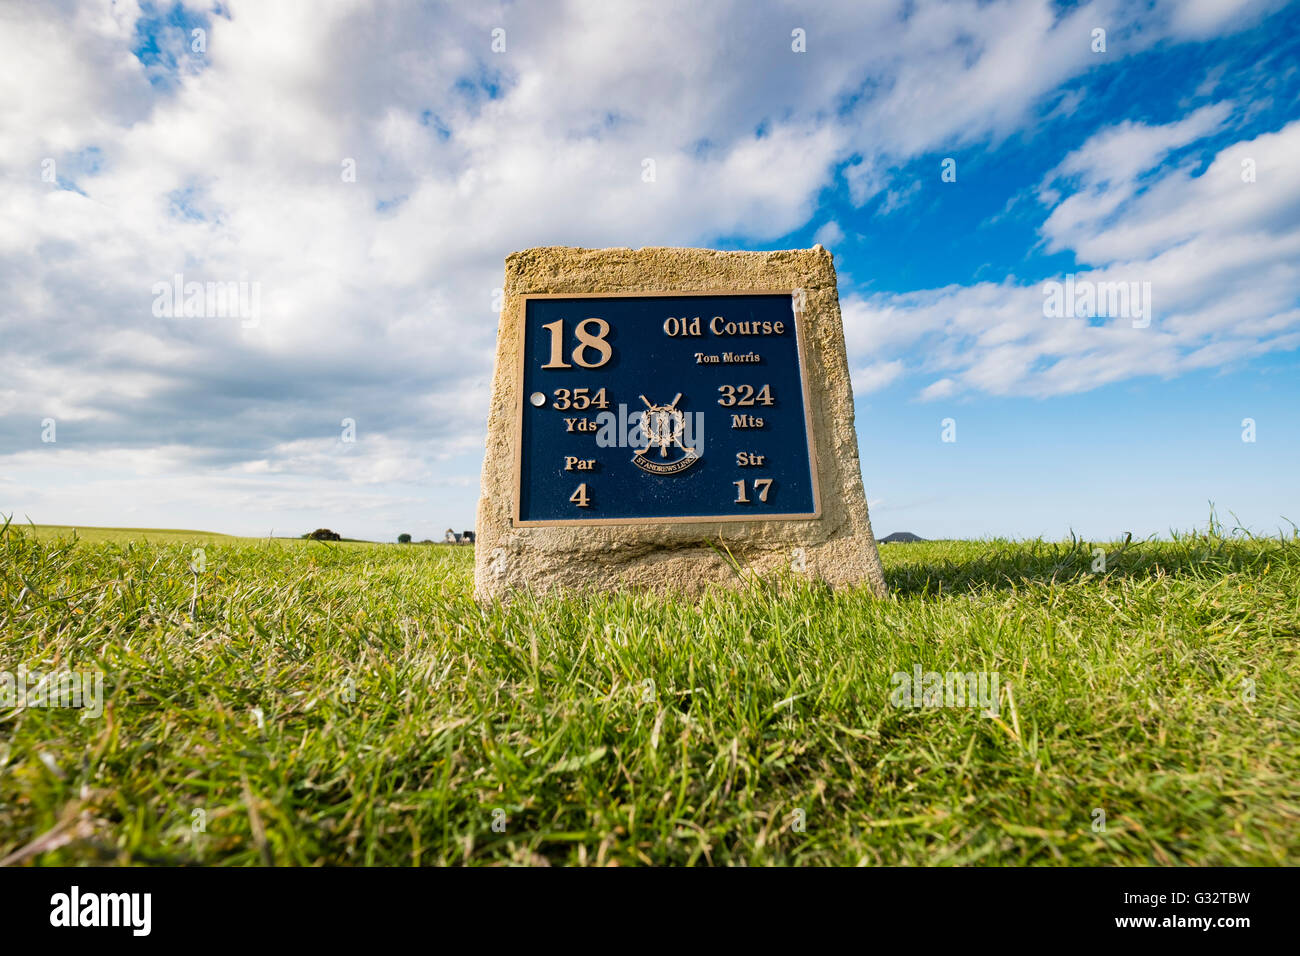 Tee box on 18th hole , Tom Morris, at Old Course of St Andrews in Fife Scotland, united Kingdom - Stock Image